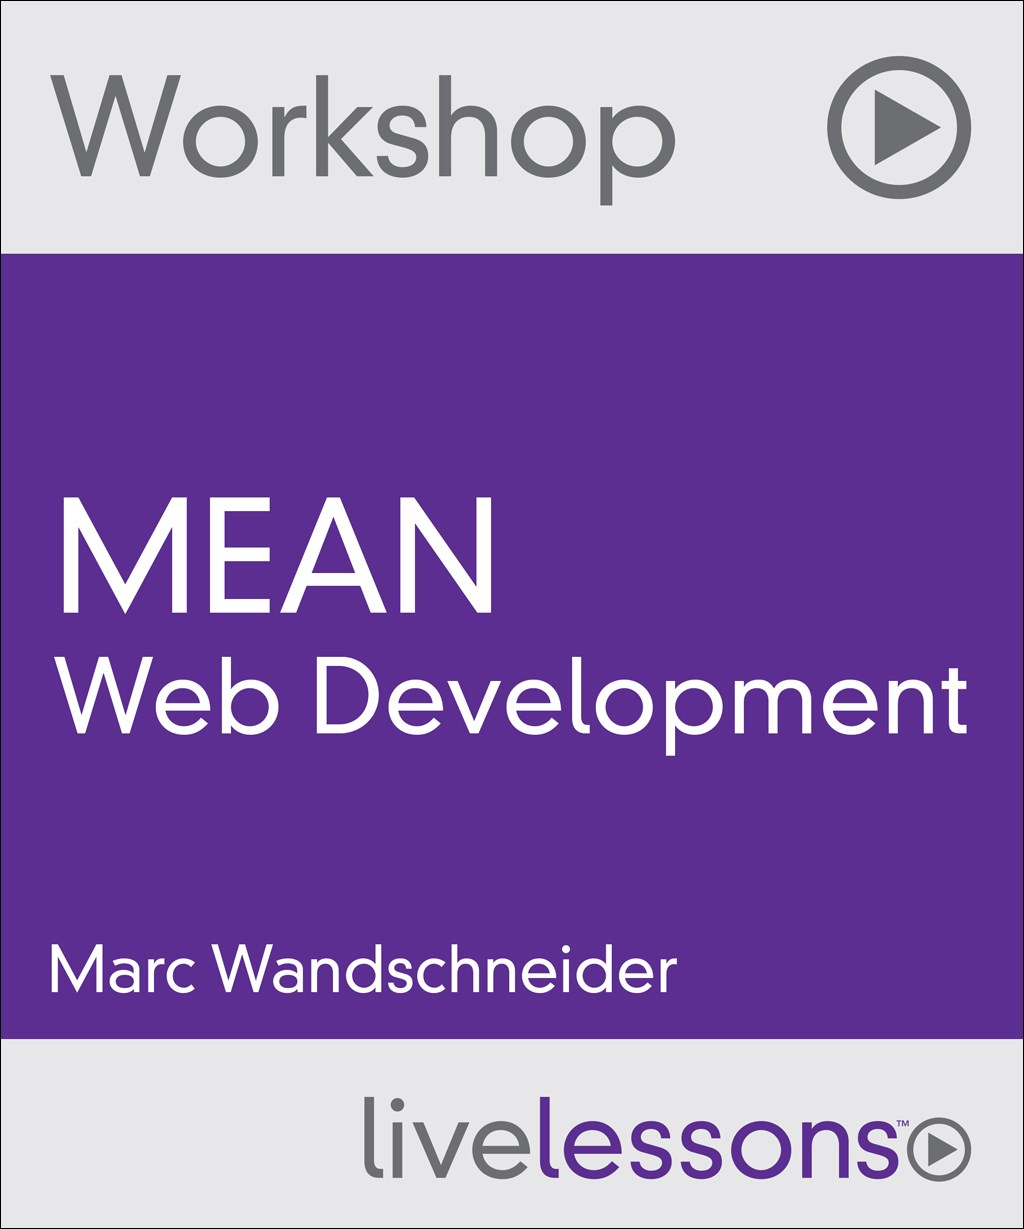 MEAN Web Development Workshop  (Video Training): An introduction to the MEAN web programming stack: MongoDB, Express, AngularJS, and Node.js